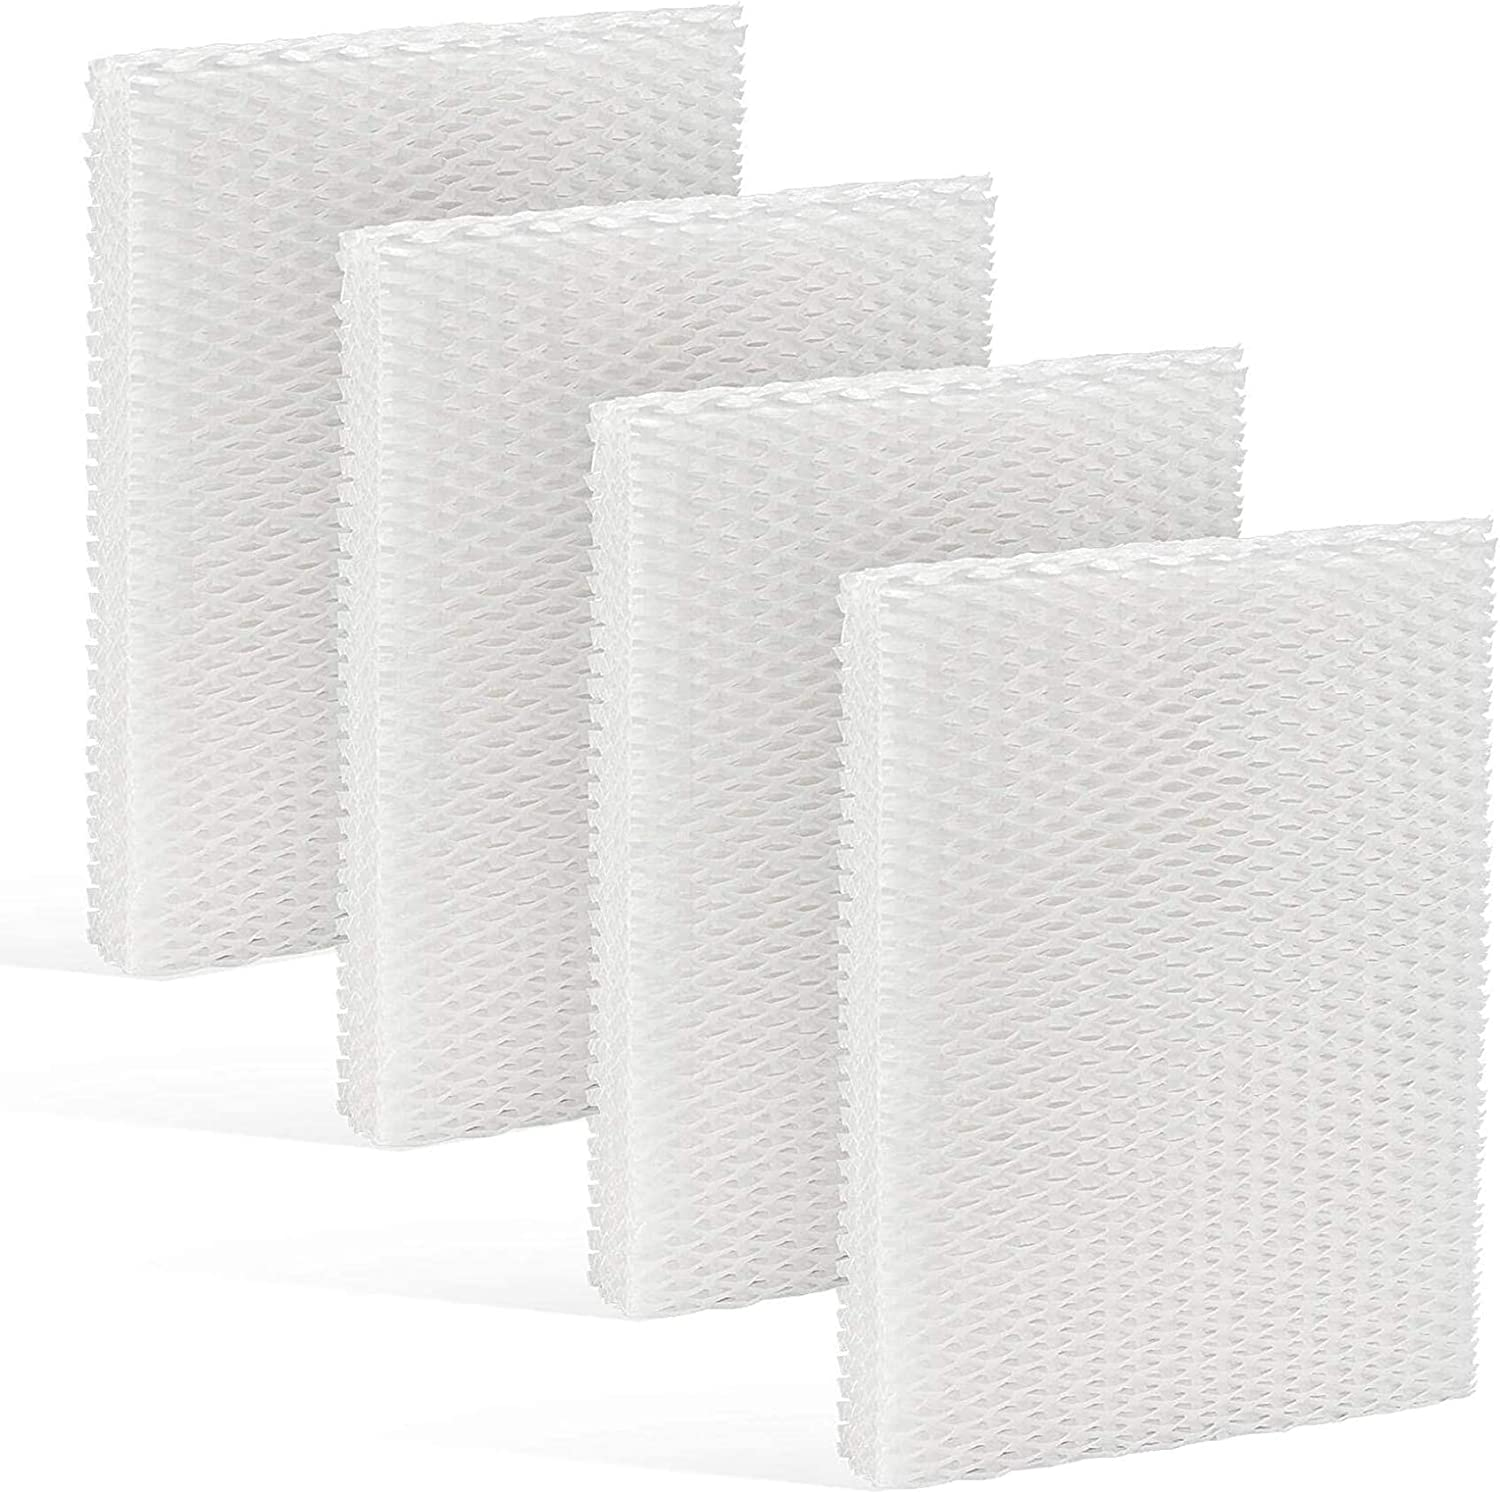 UKNESFROD MD1-0034 Replacement Humidifier Filters Wicks Compatib Popularity Ranking TOP19